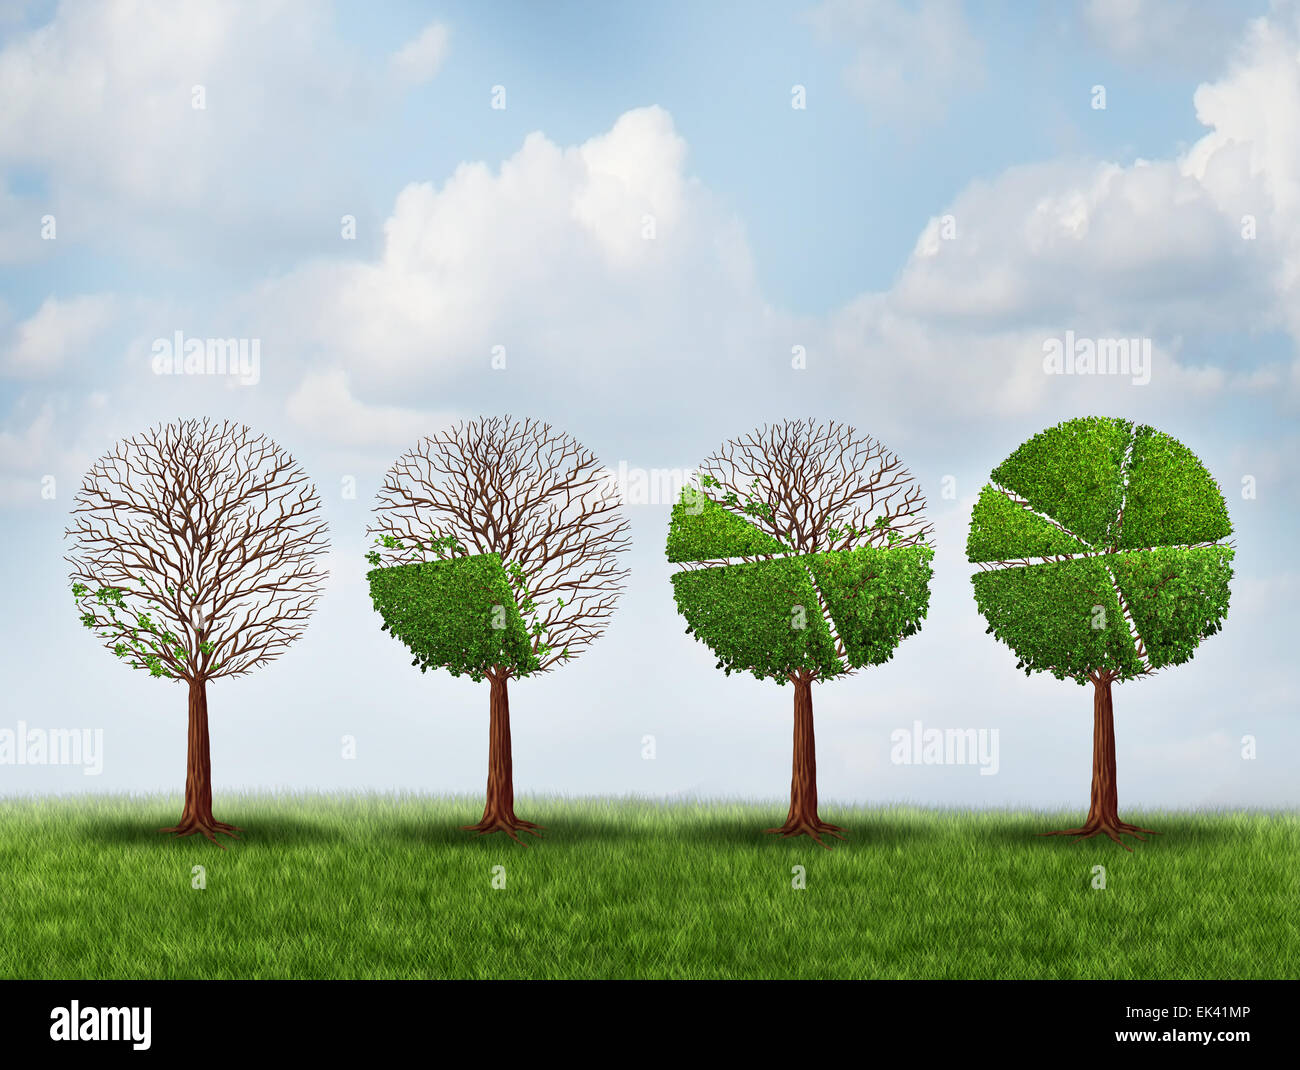 Economic prosperity financial concept as a group of green trees shaped as growing finance pie chart as a metaphor - Stock Image